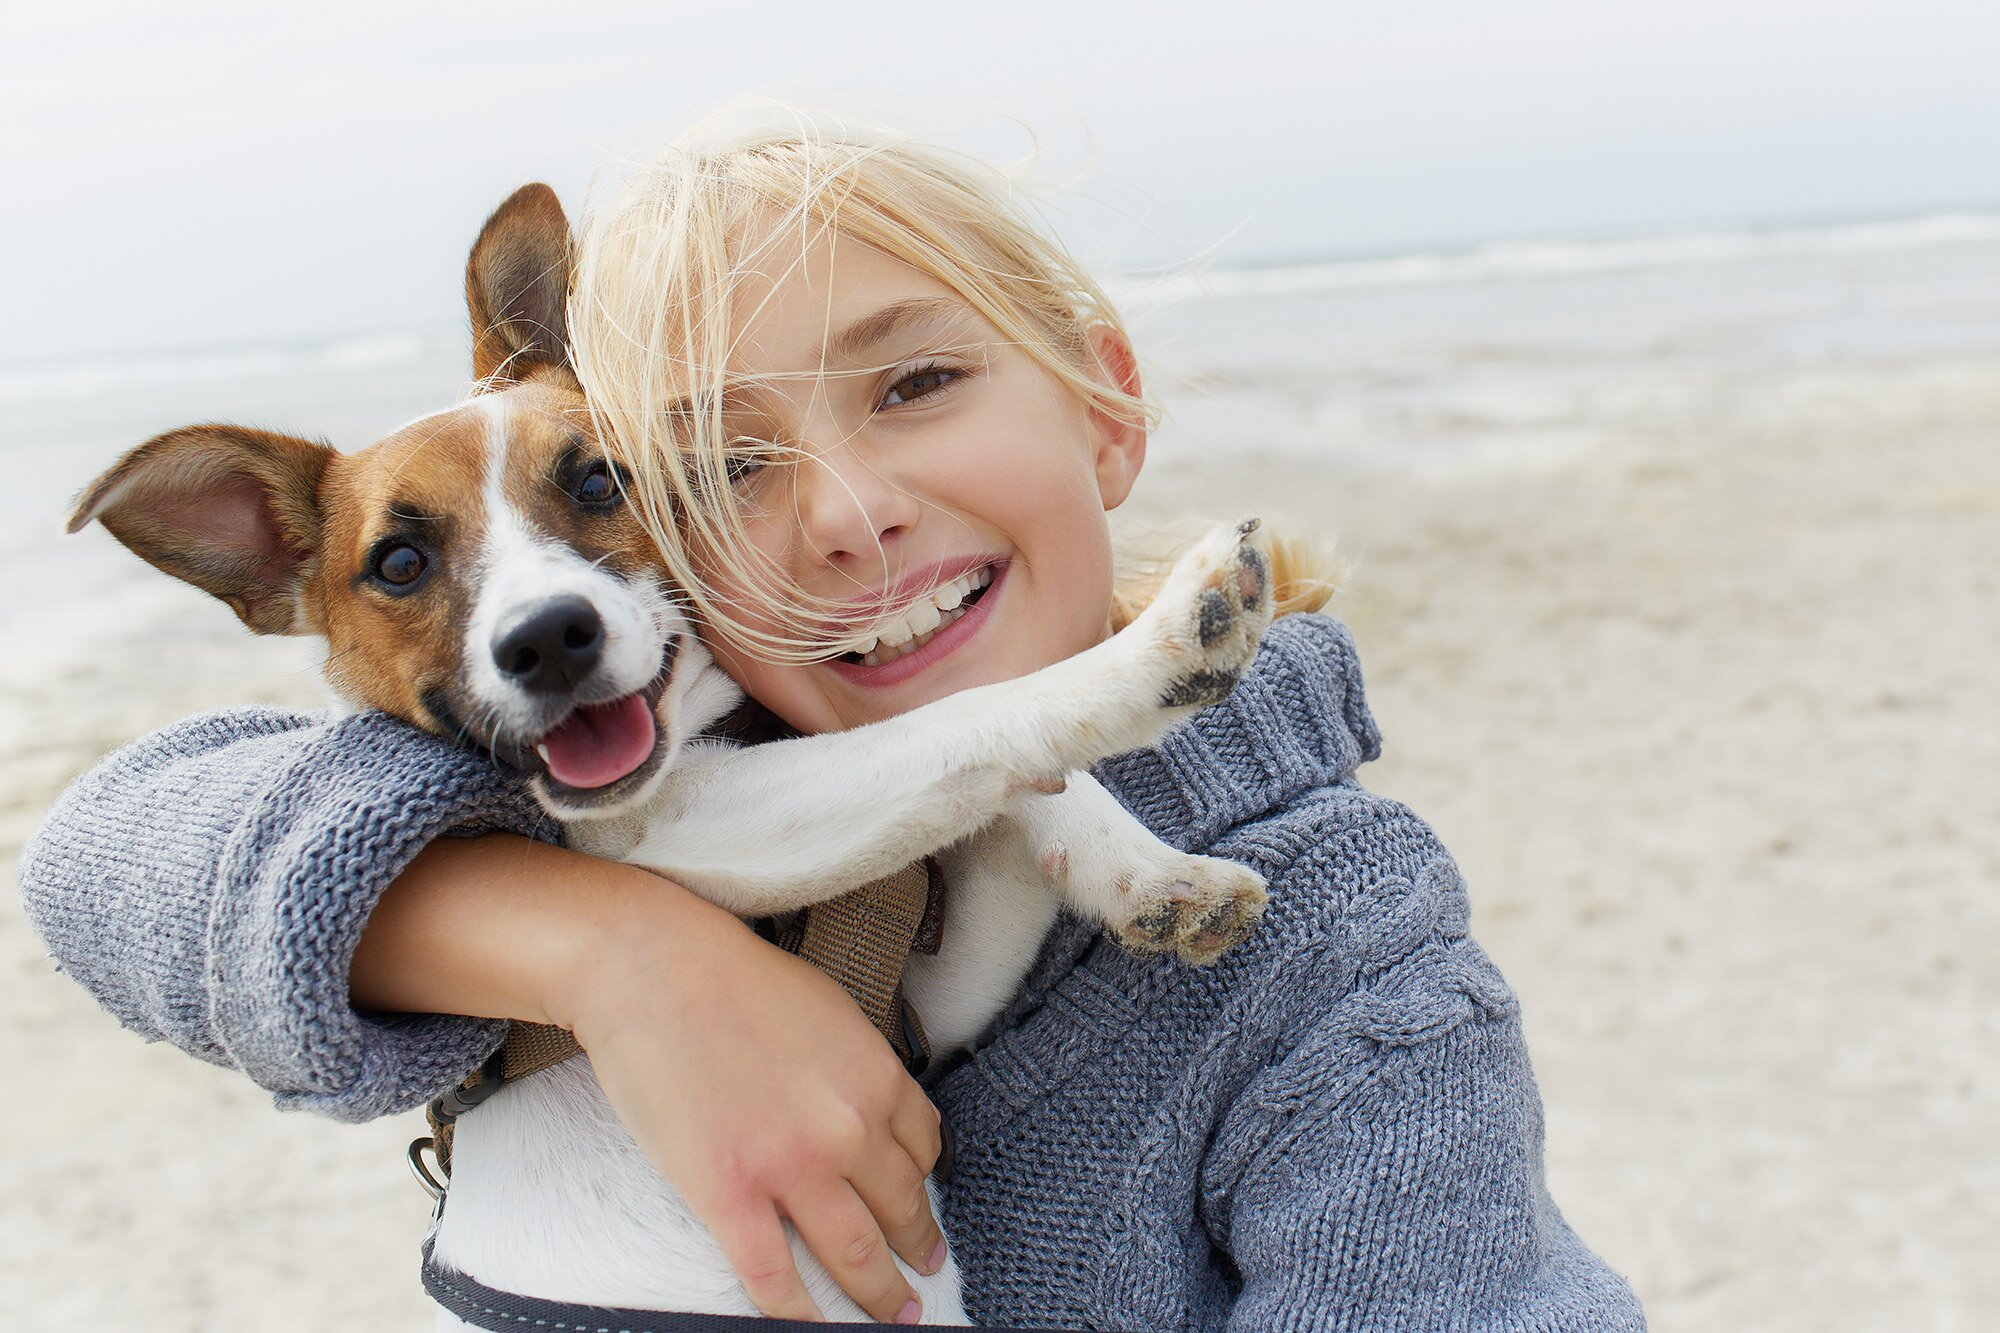 New Study Dogs Love Human Smiles Because of Oxytocin | PEOPLE.com